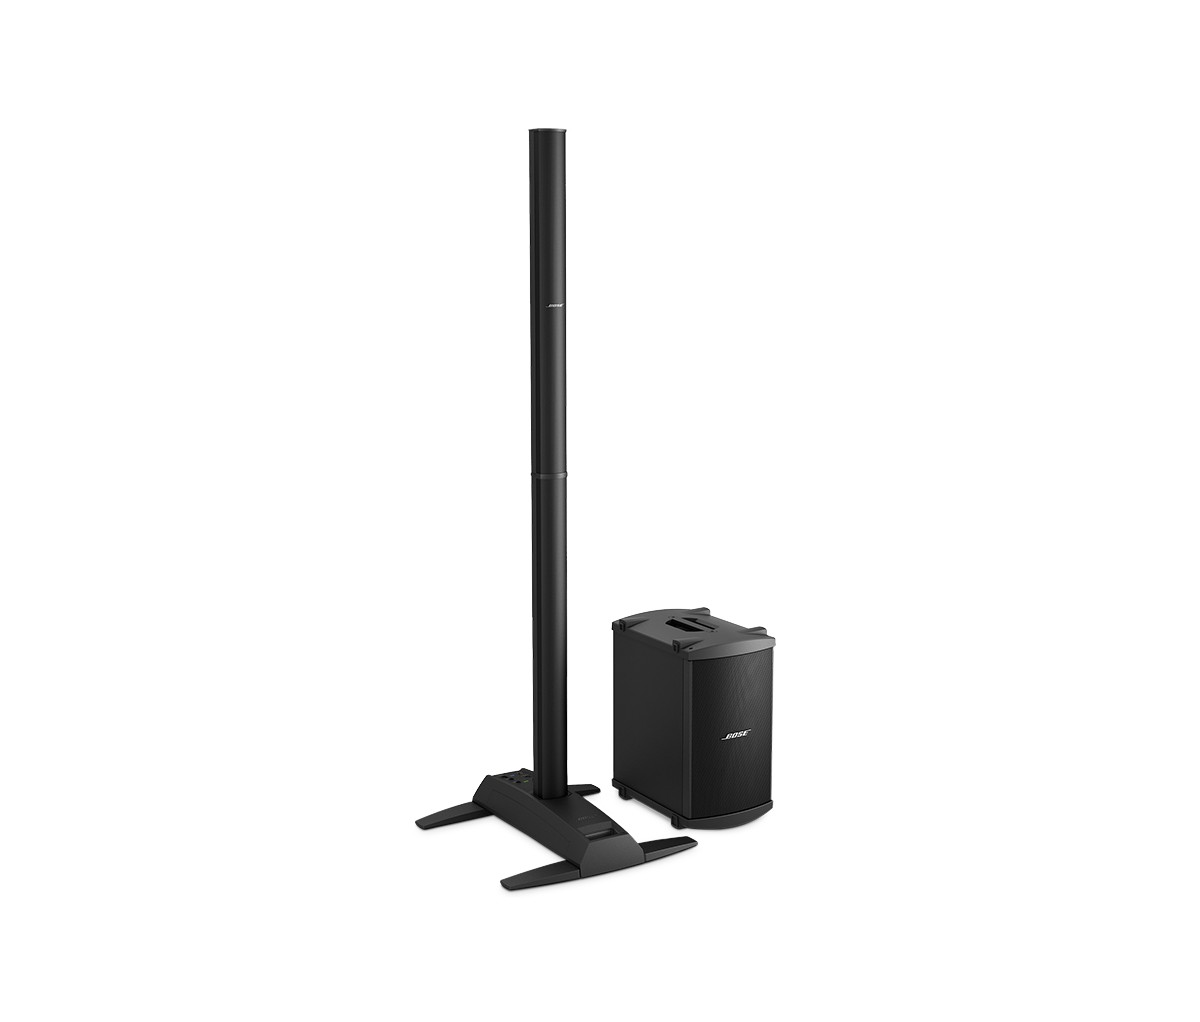 bose l1 model 1s system with b2 bass module. Black Bedroom Furniture Sets. Home Design Ideas